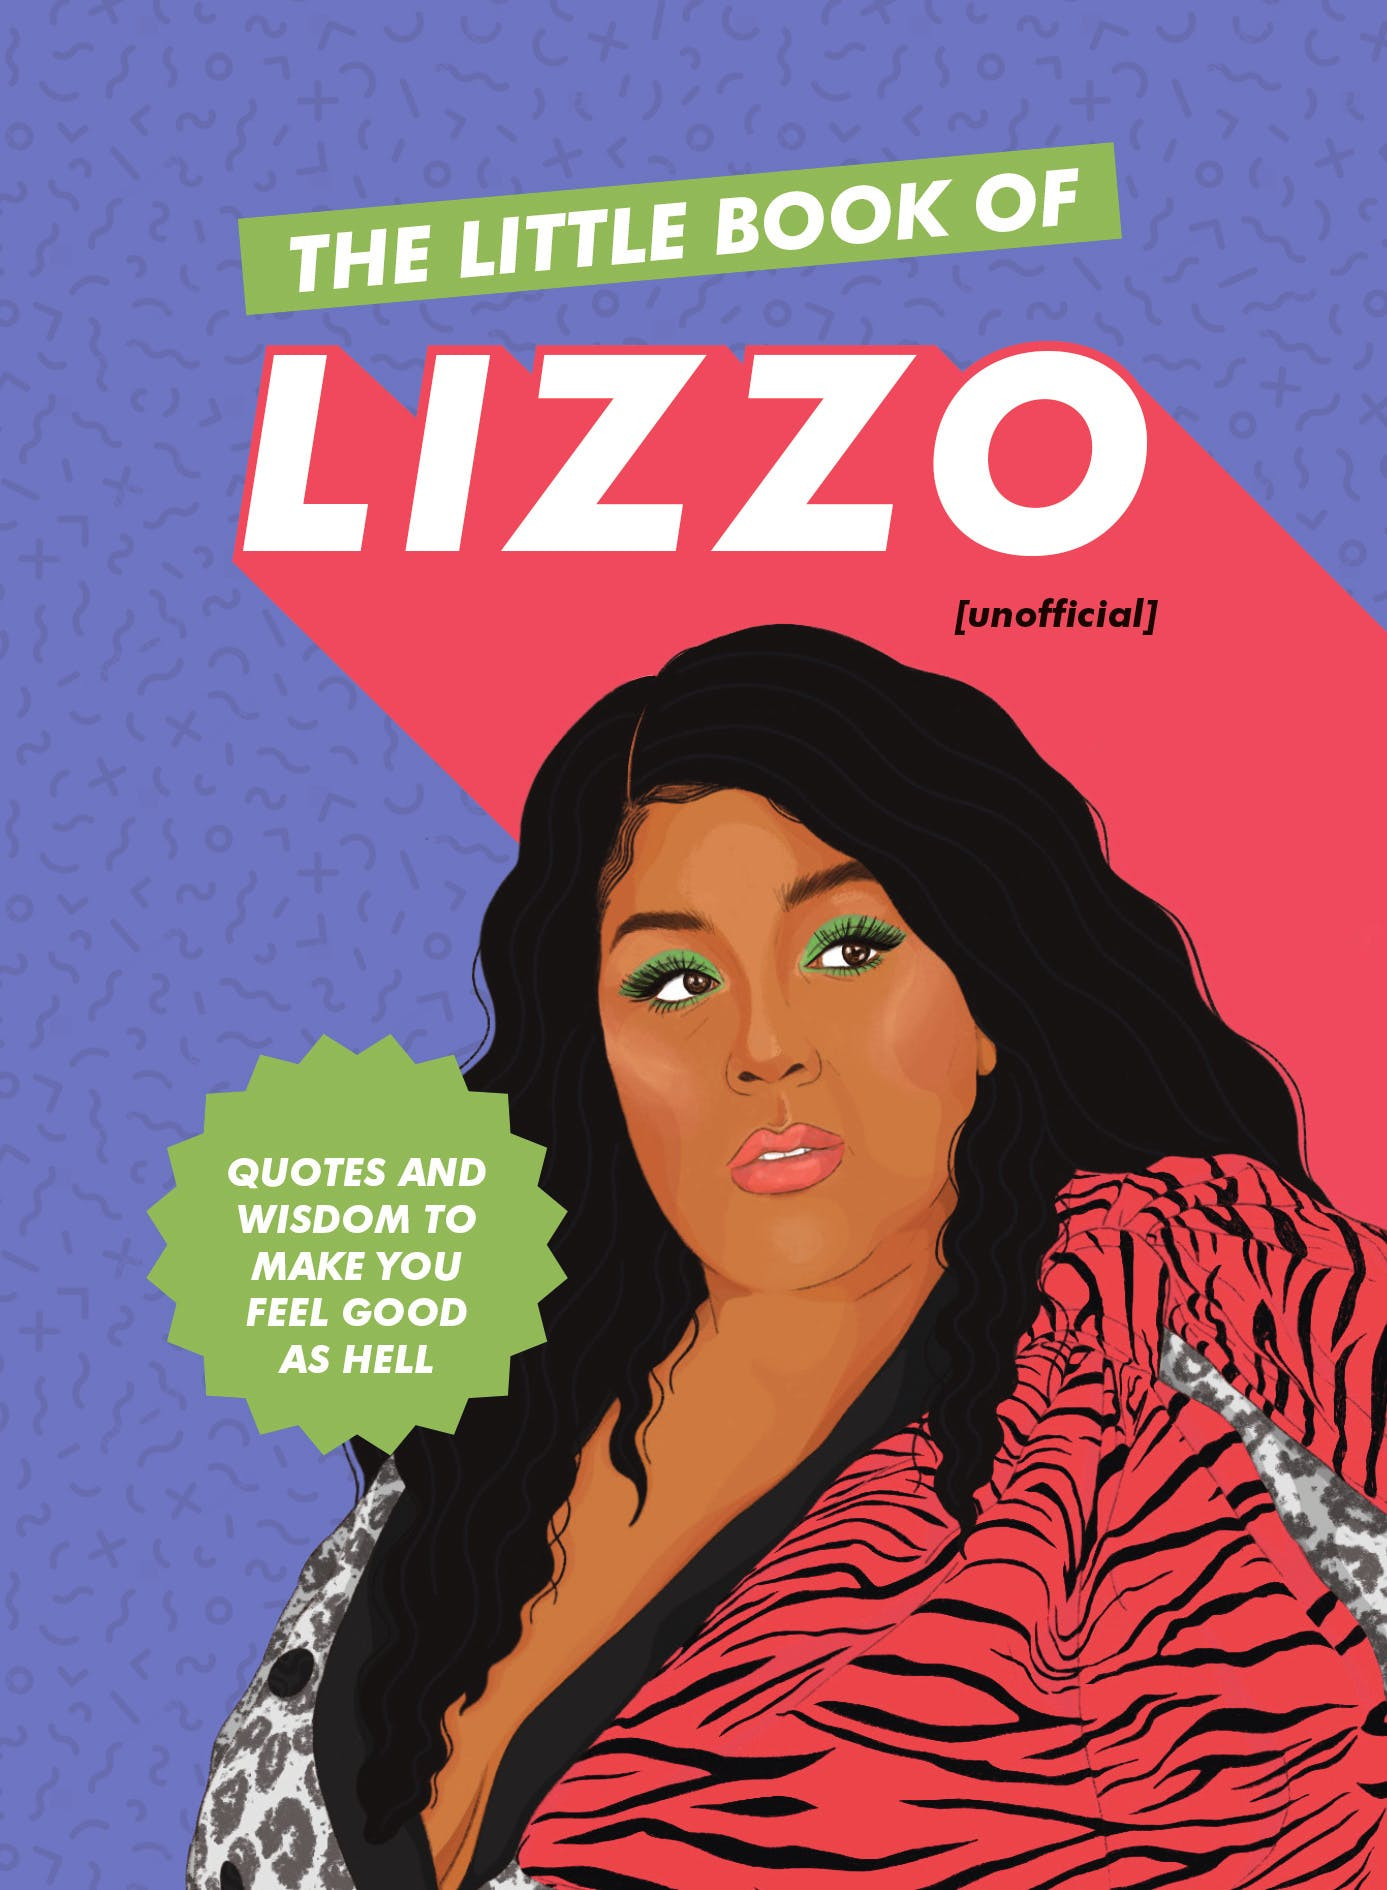 The Little Book of Lizzo (Hodder & Stoughton, 2019)